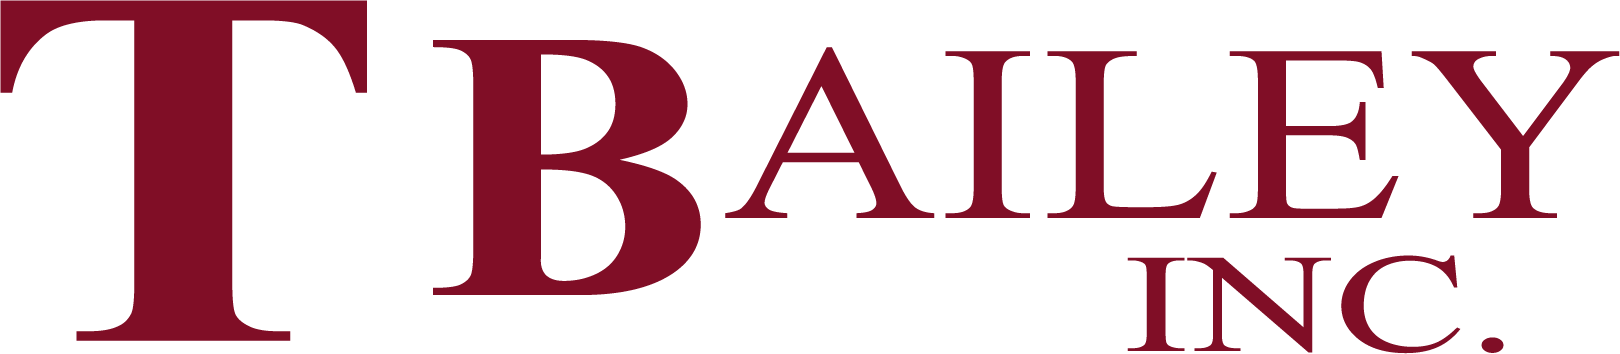 T-Bailey-Logo-1.png